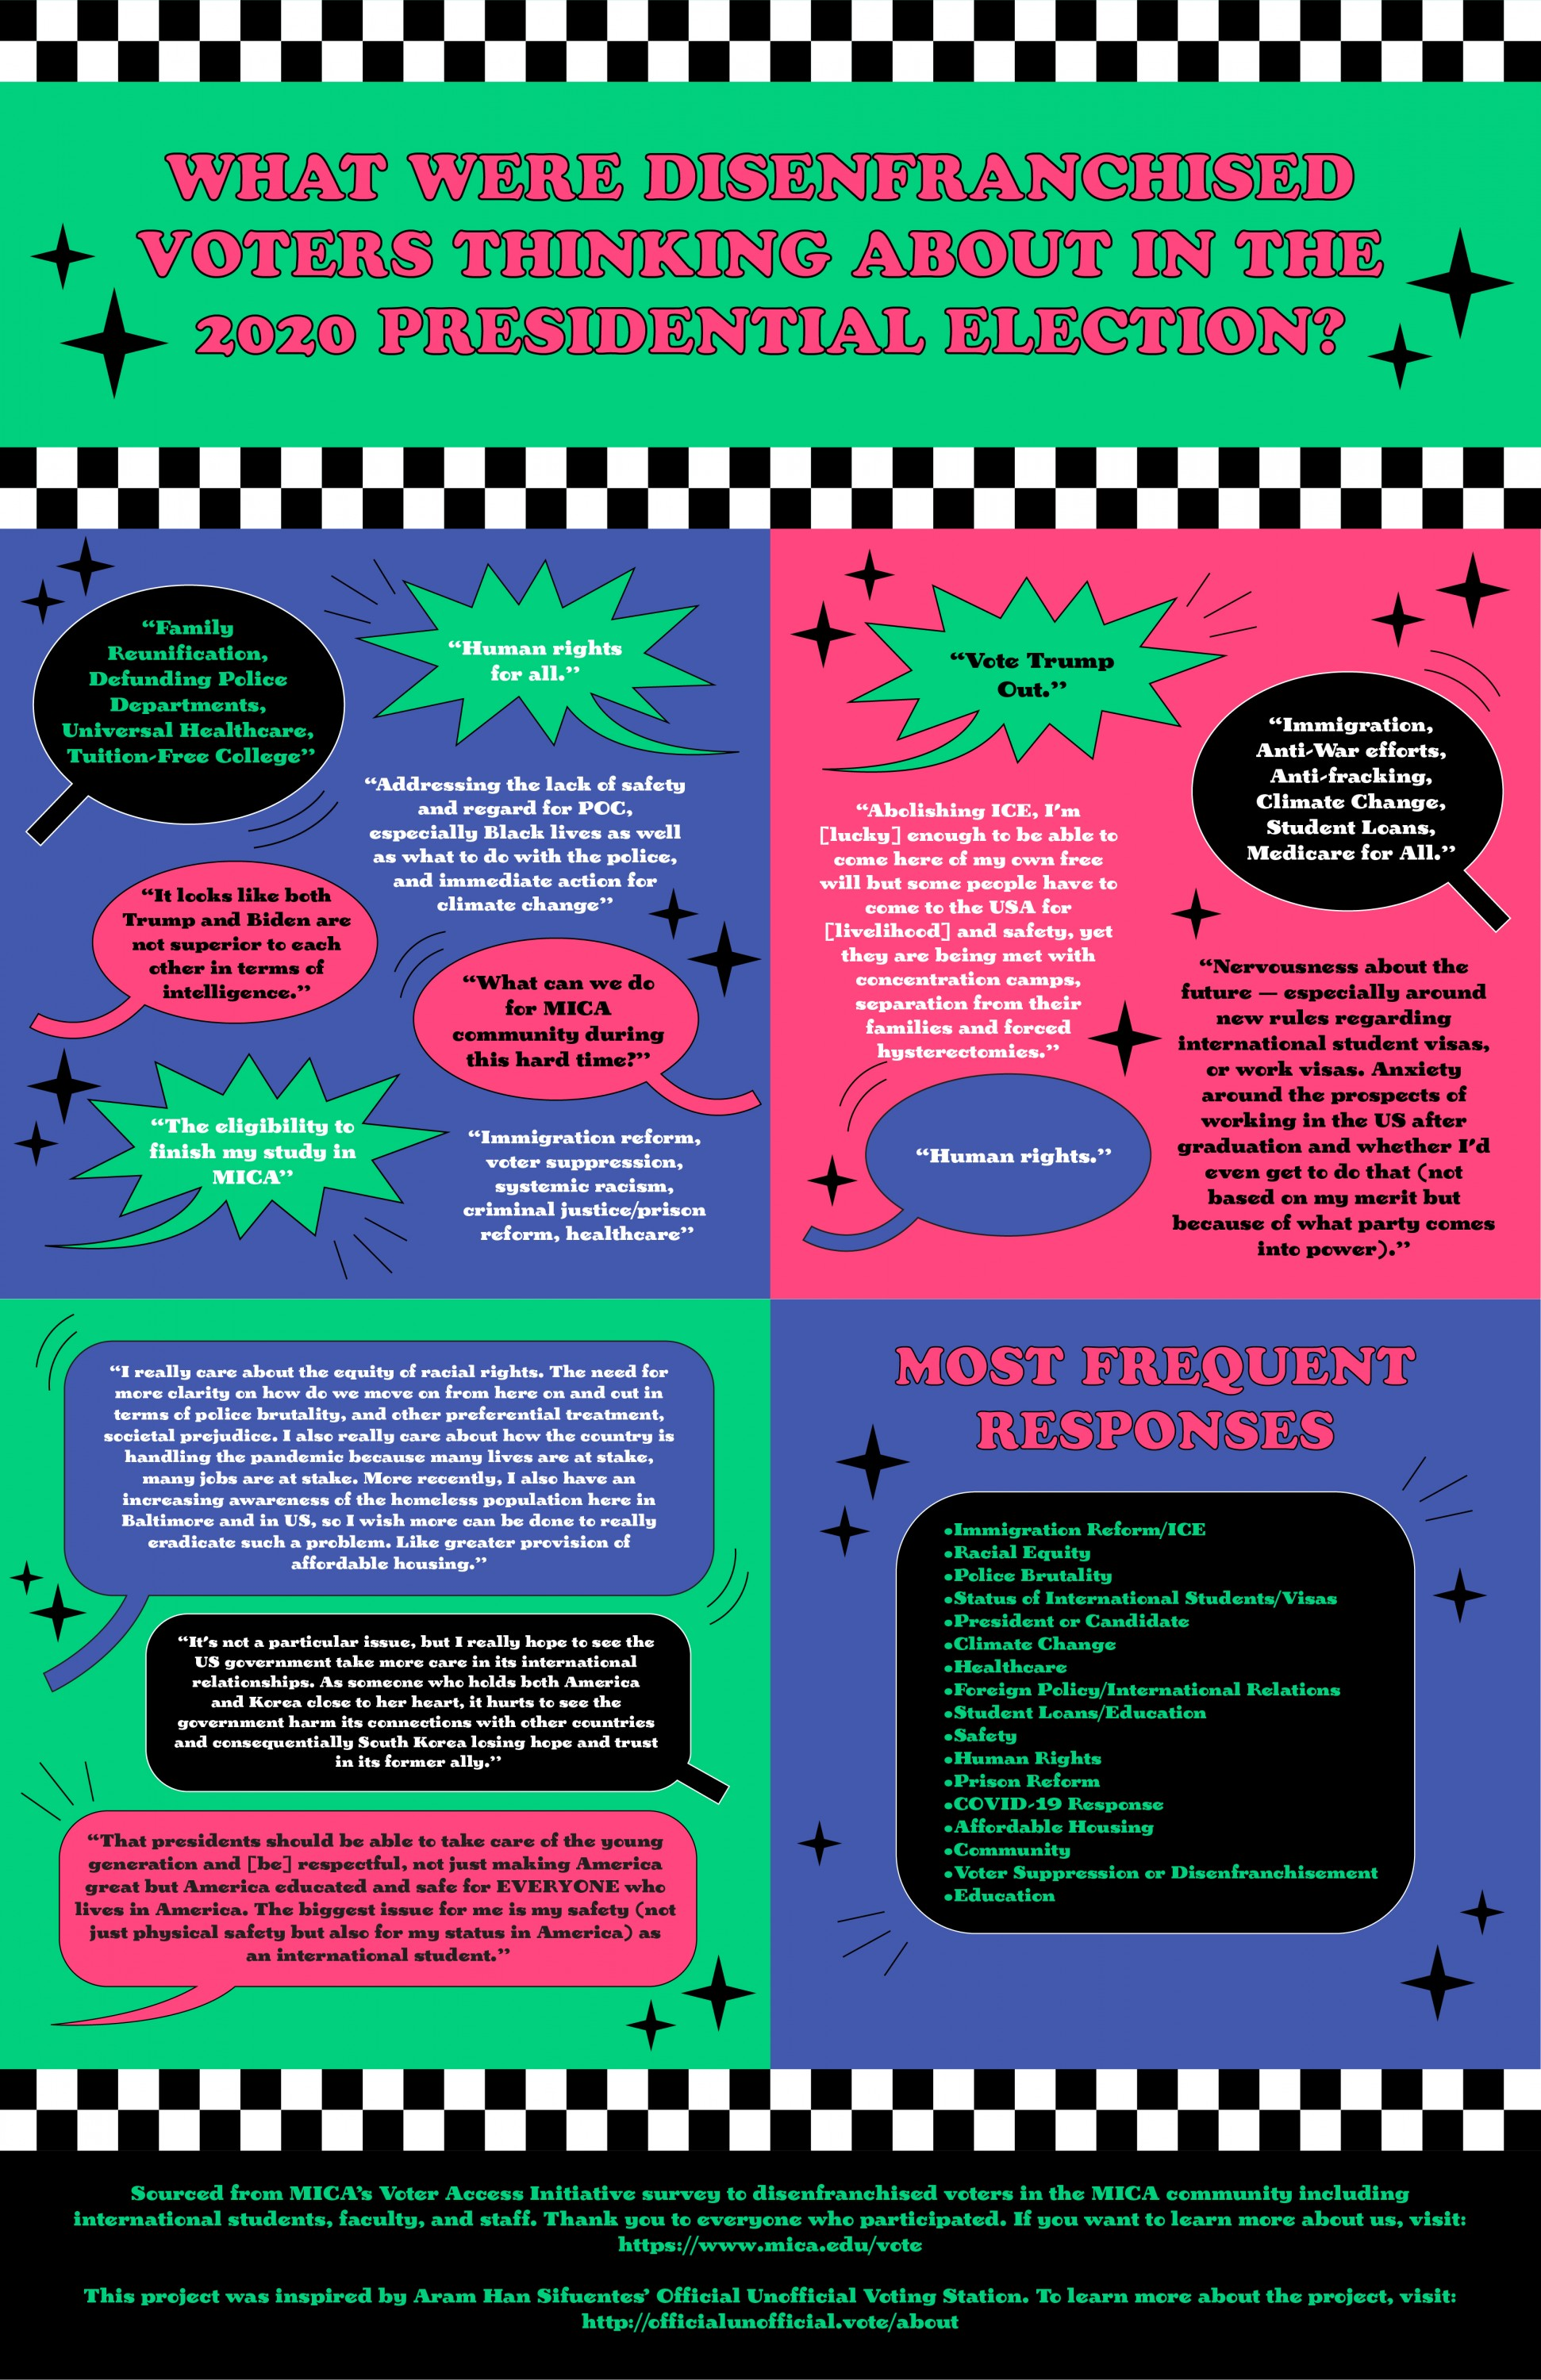 Infographic with responses from disenfranchised voters from the MICA community, created by MICA student Jenny De La Cruz.